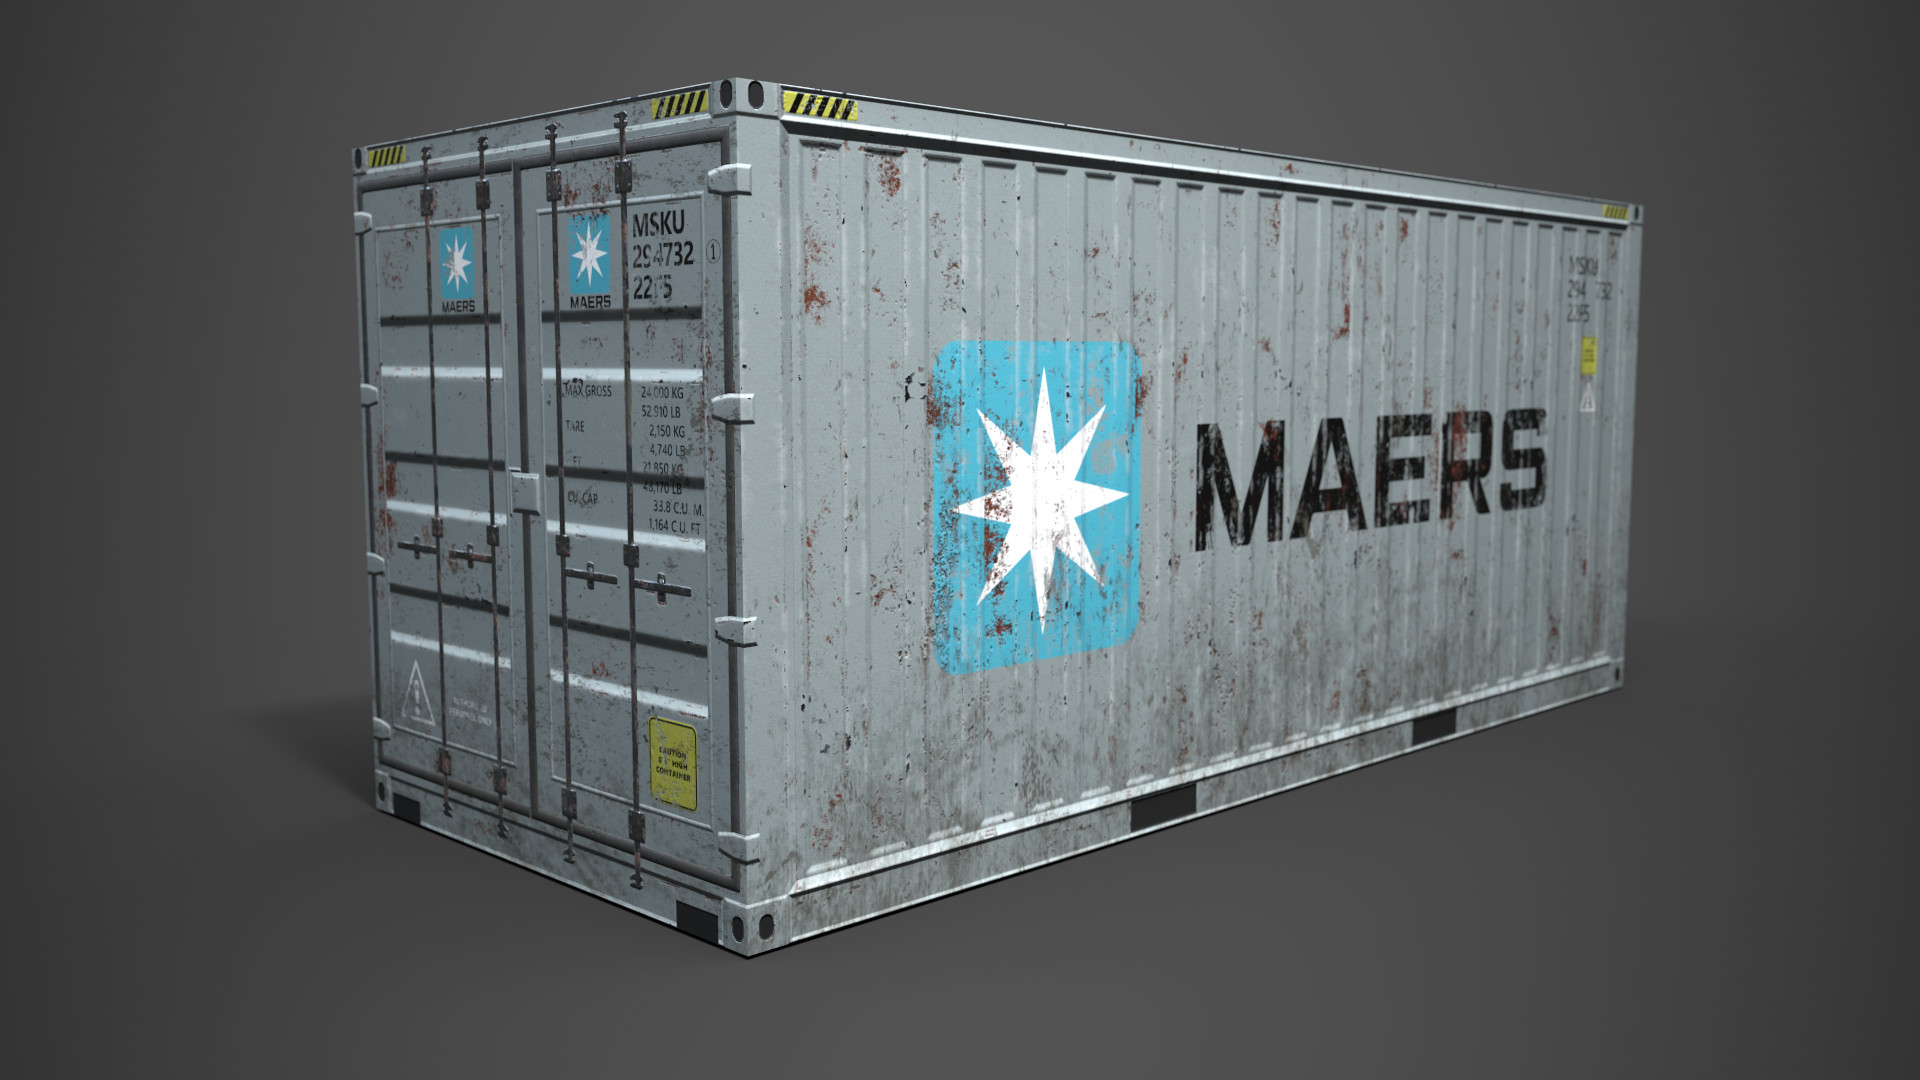 ArtStation - Poly Box - Shipping Container, Jeorge Balisoro